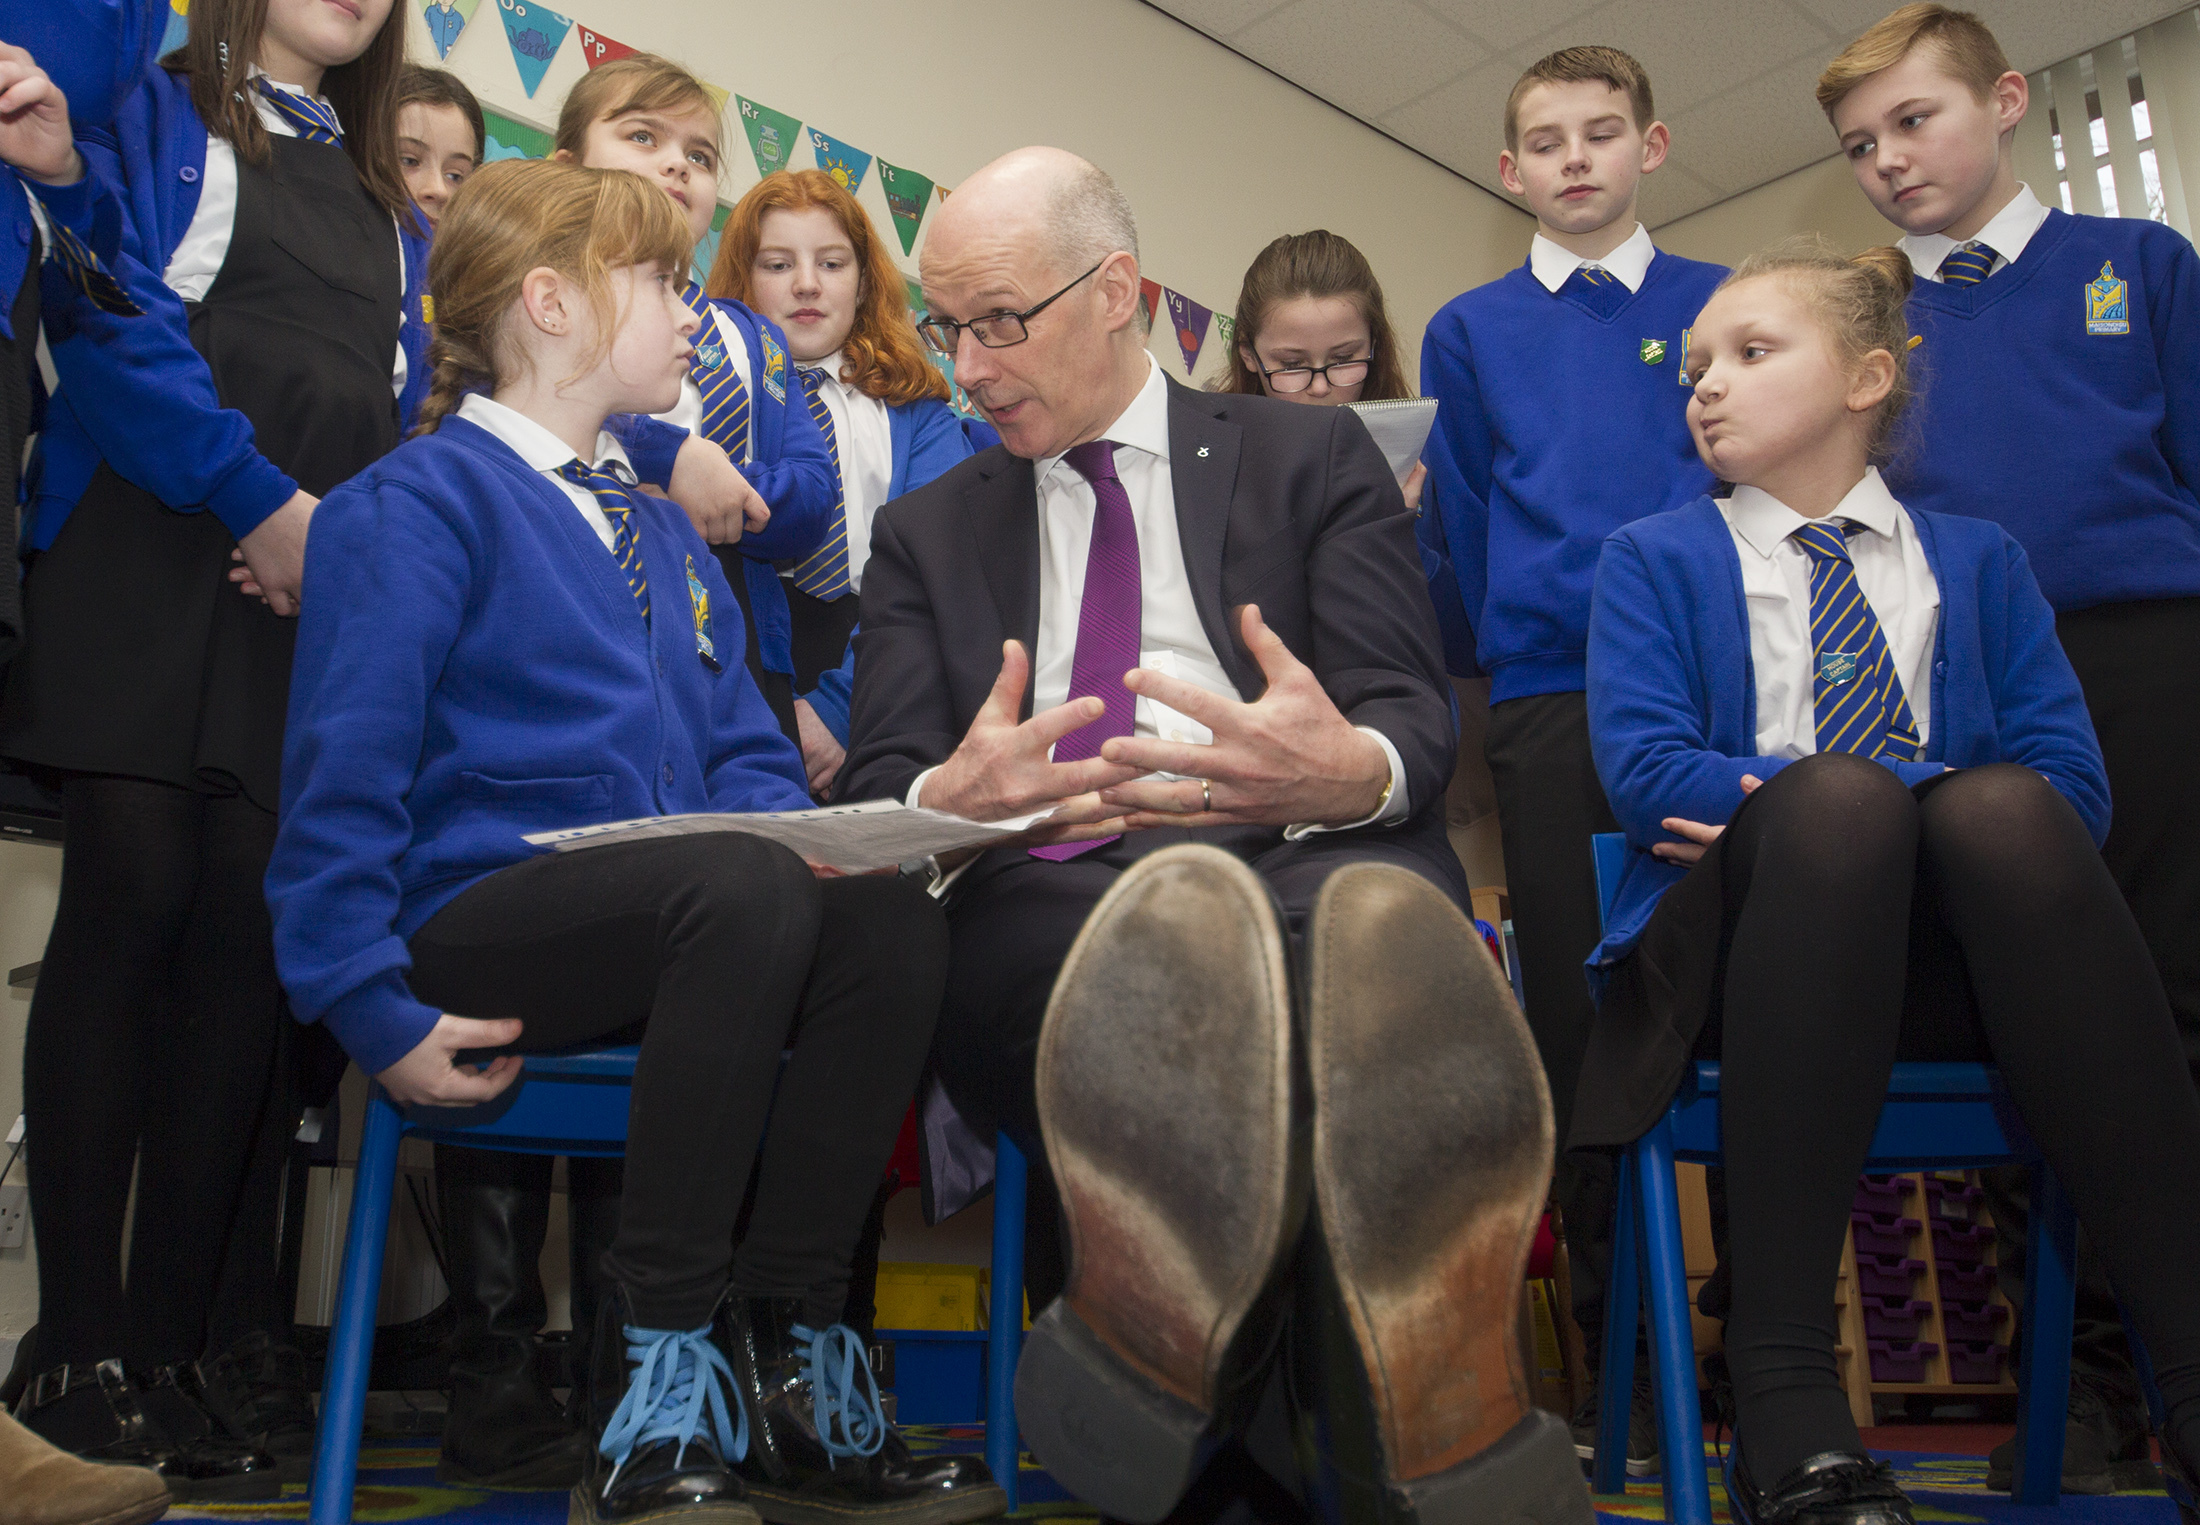 Maisondieu Primary School pupil Lexi Short (left) questions Deputy First Minister John Swinney.